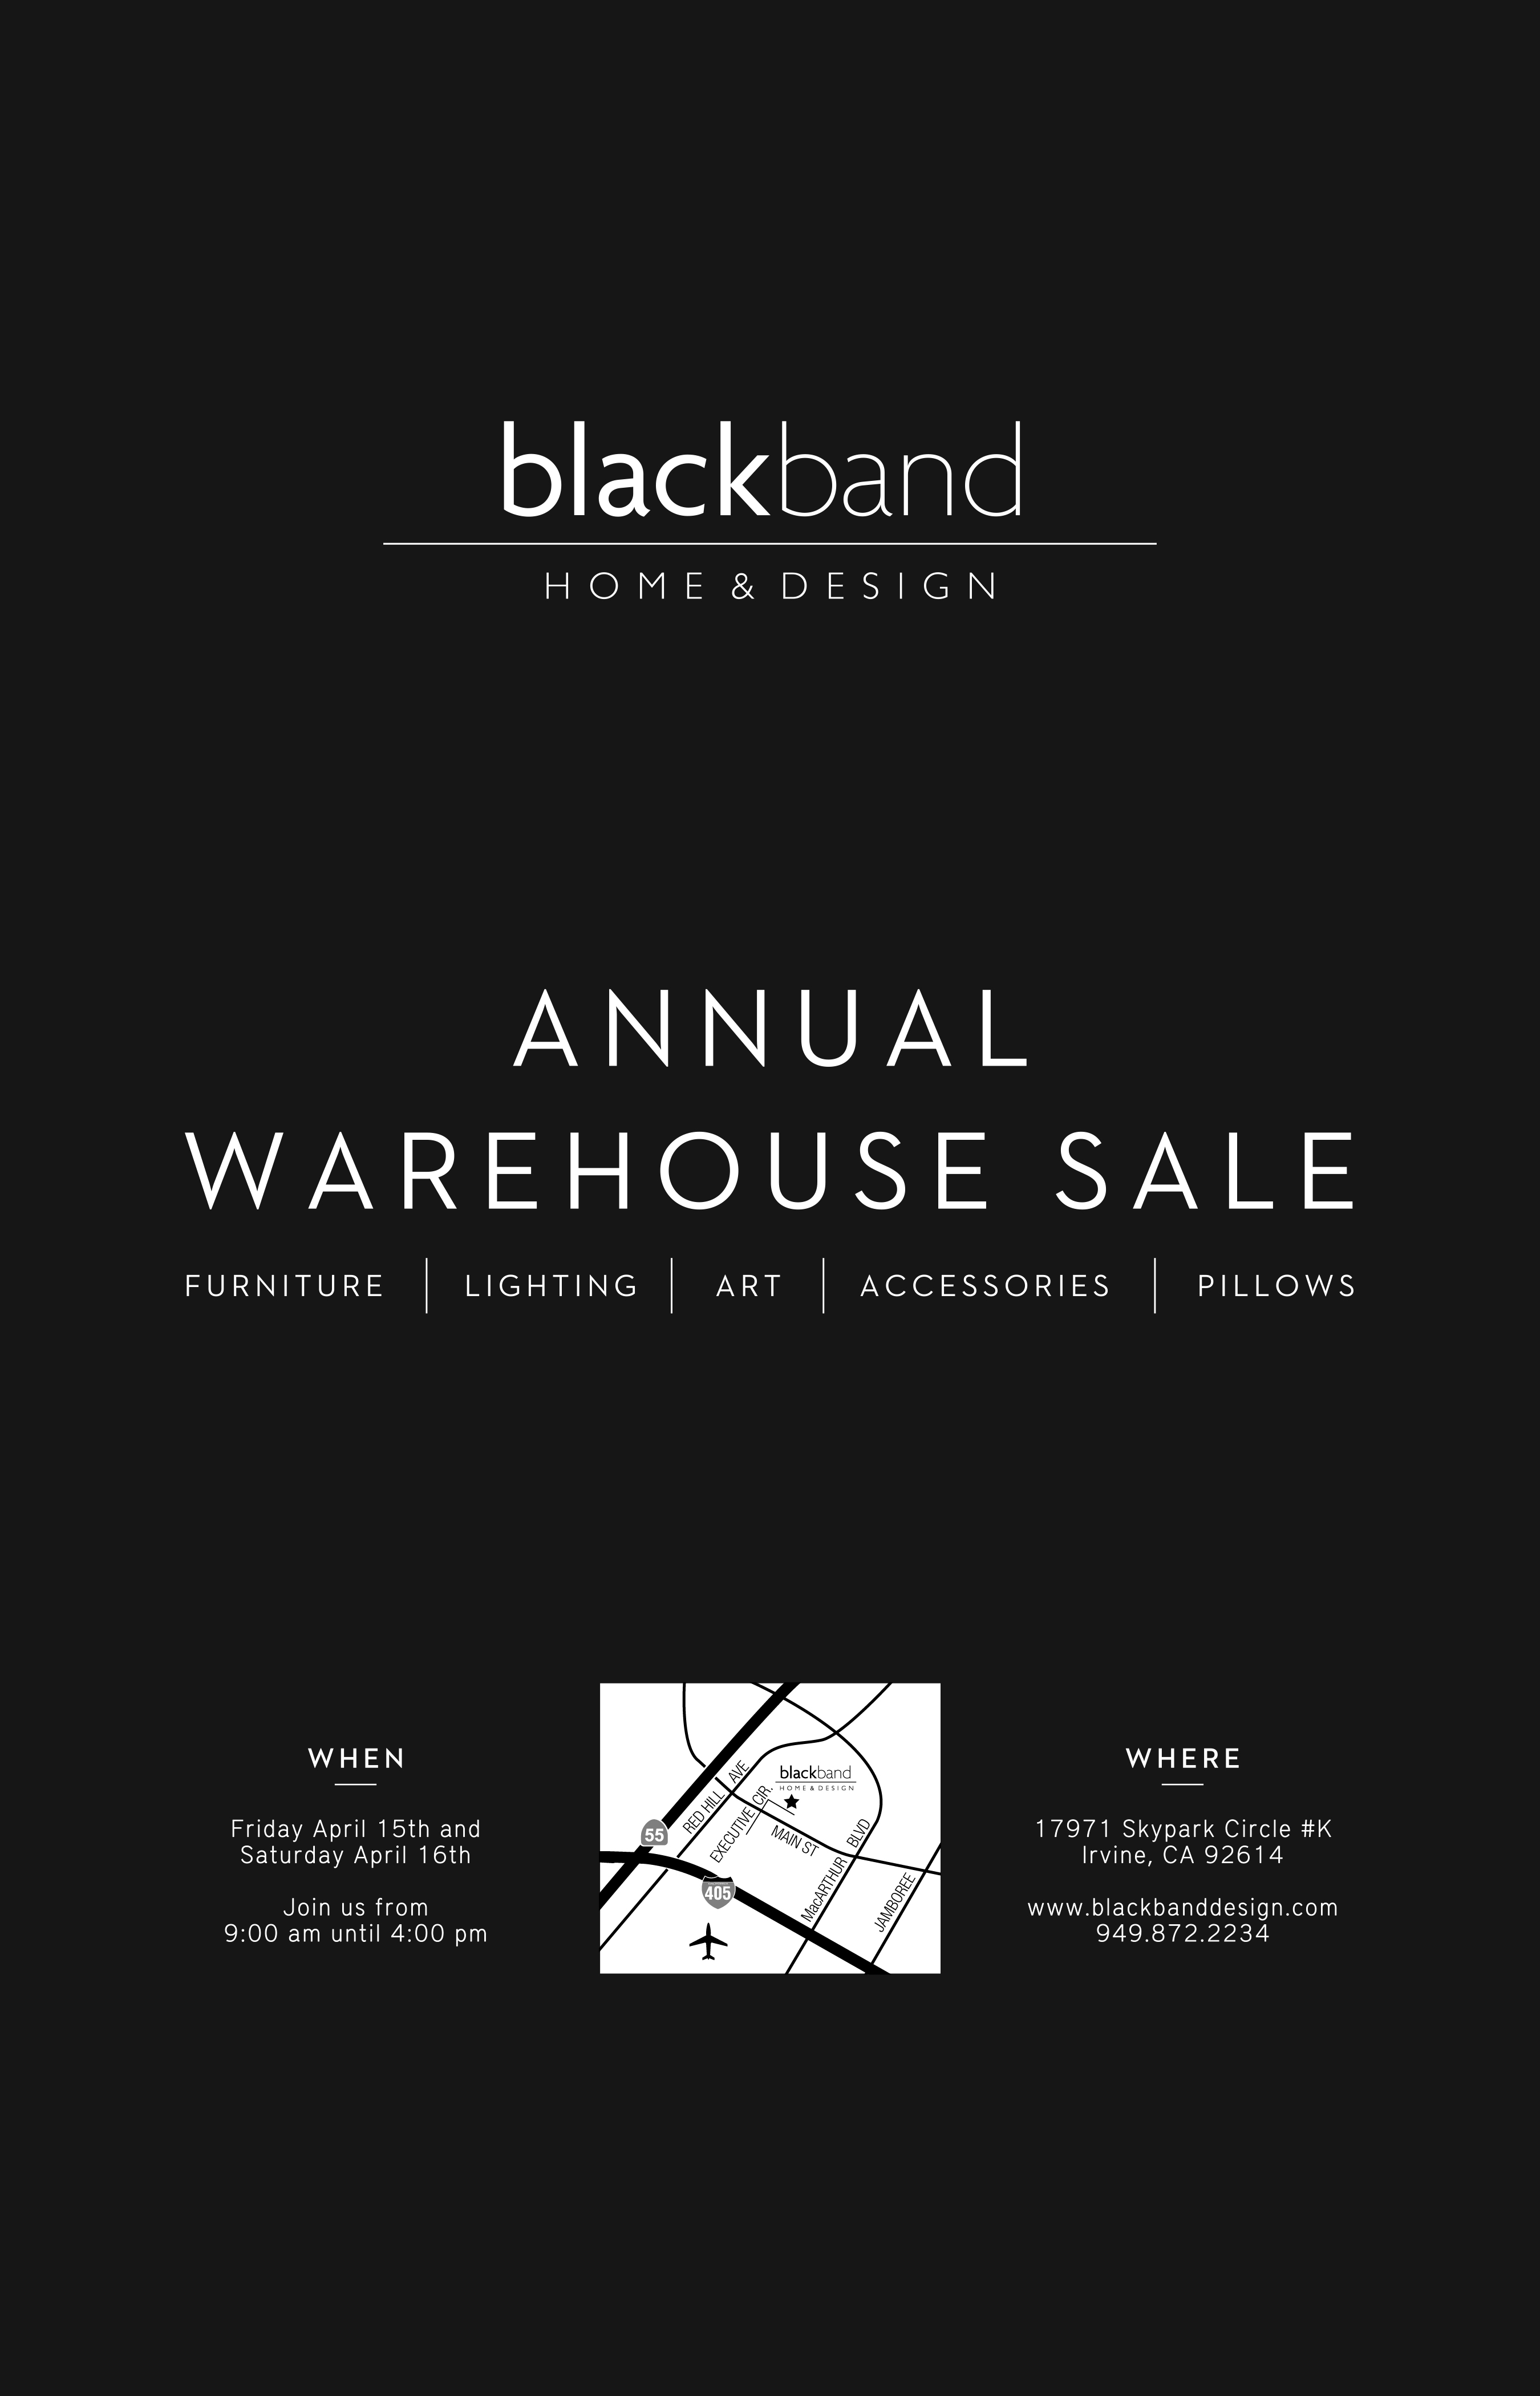 Blackband_Design_Ad10_Warehouse_Delivery_OL_CA4